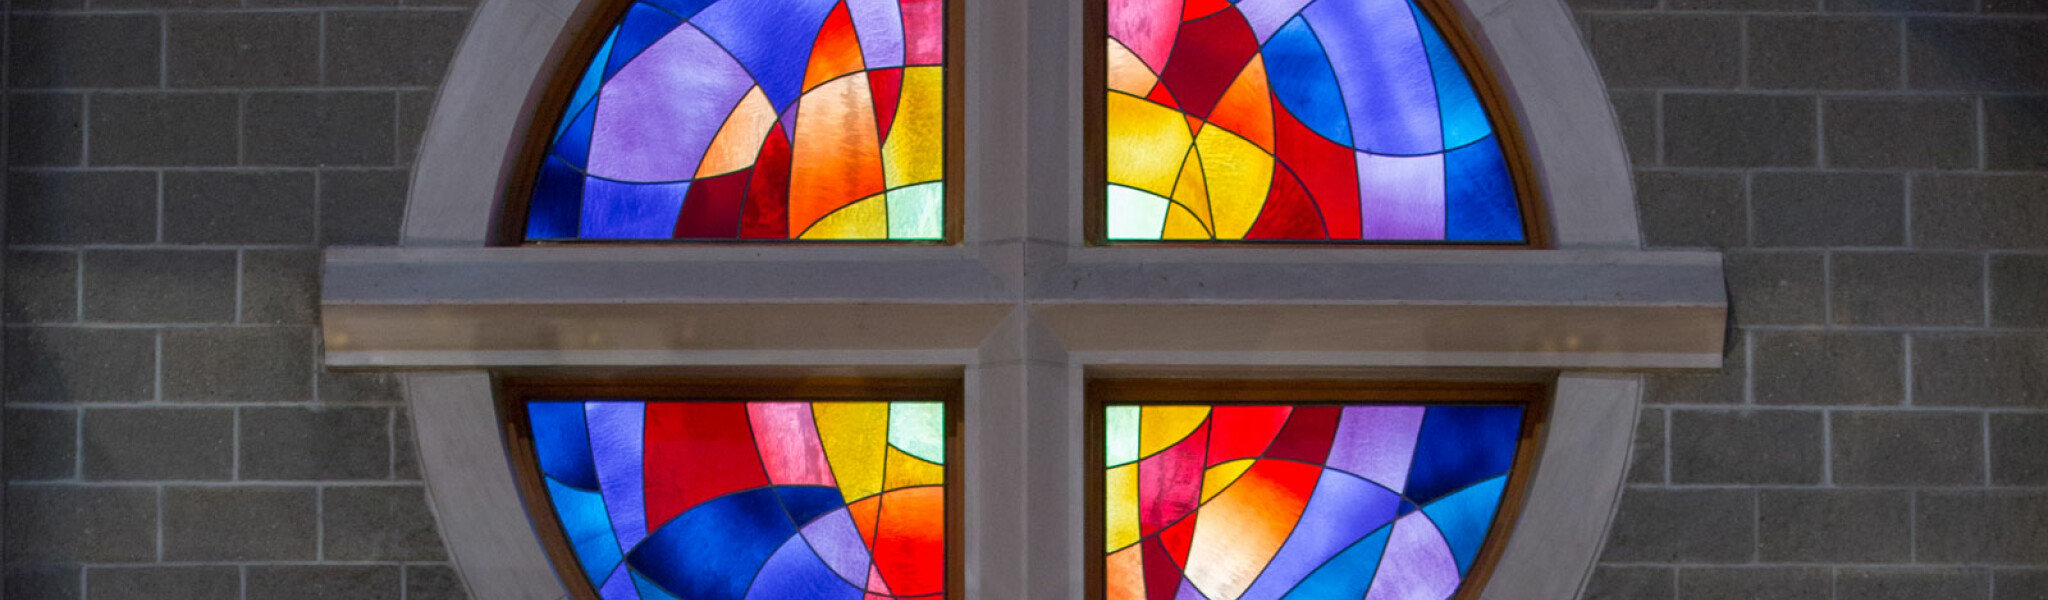 Forms | Cornerstone Lutheran Church | Cornerstone Lutheran Church